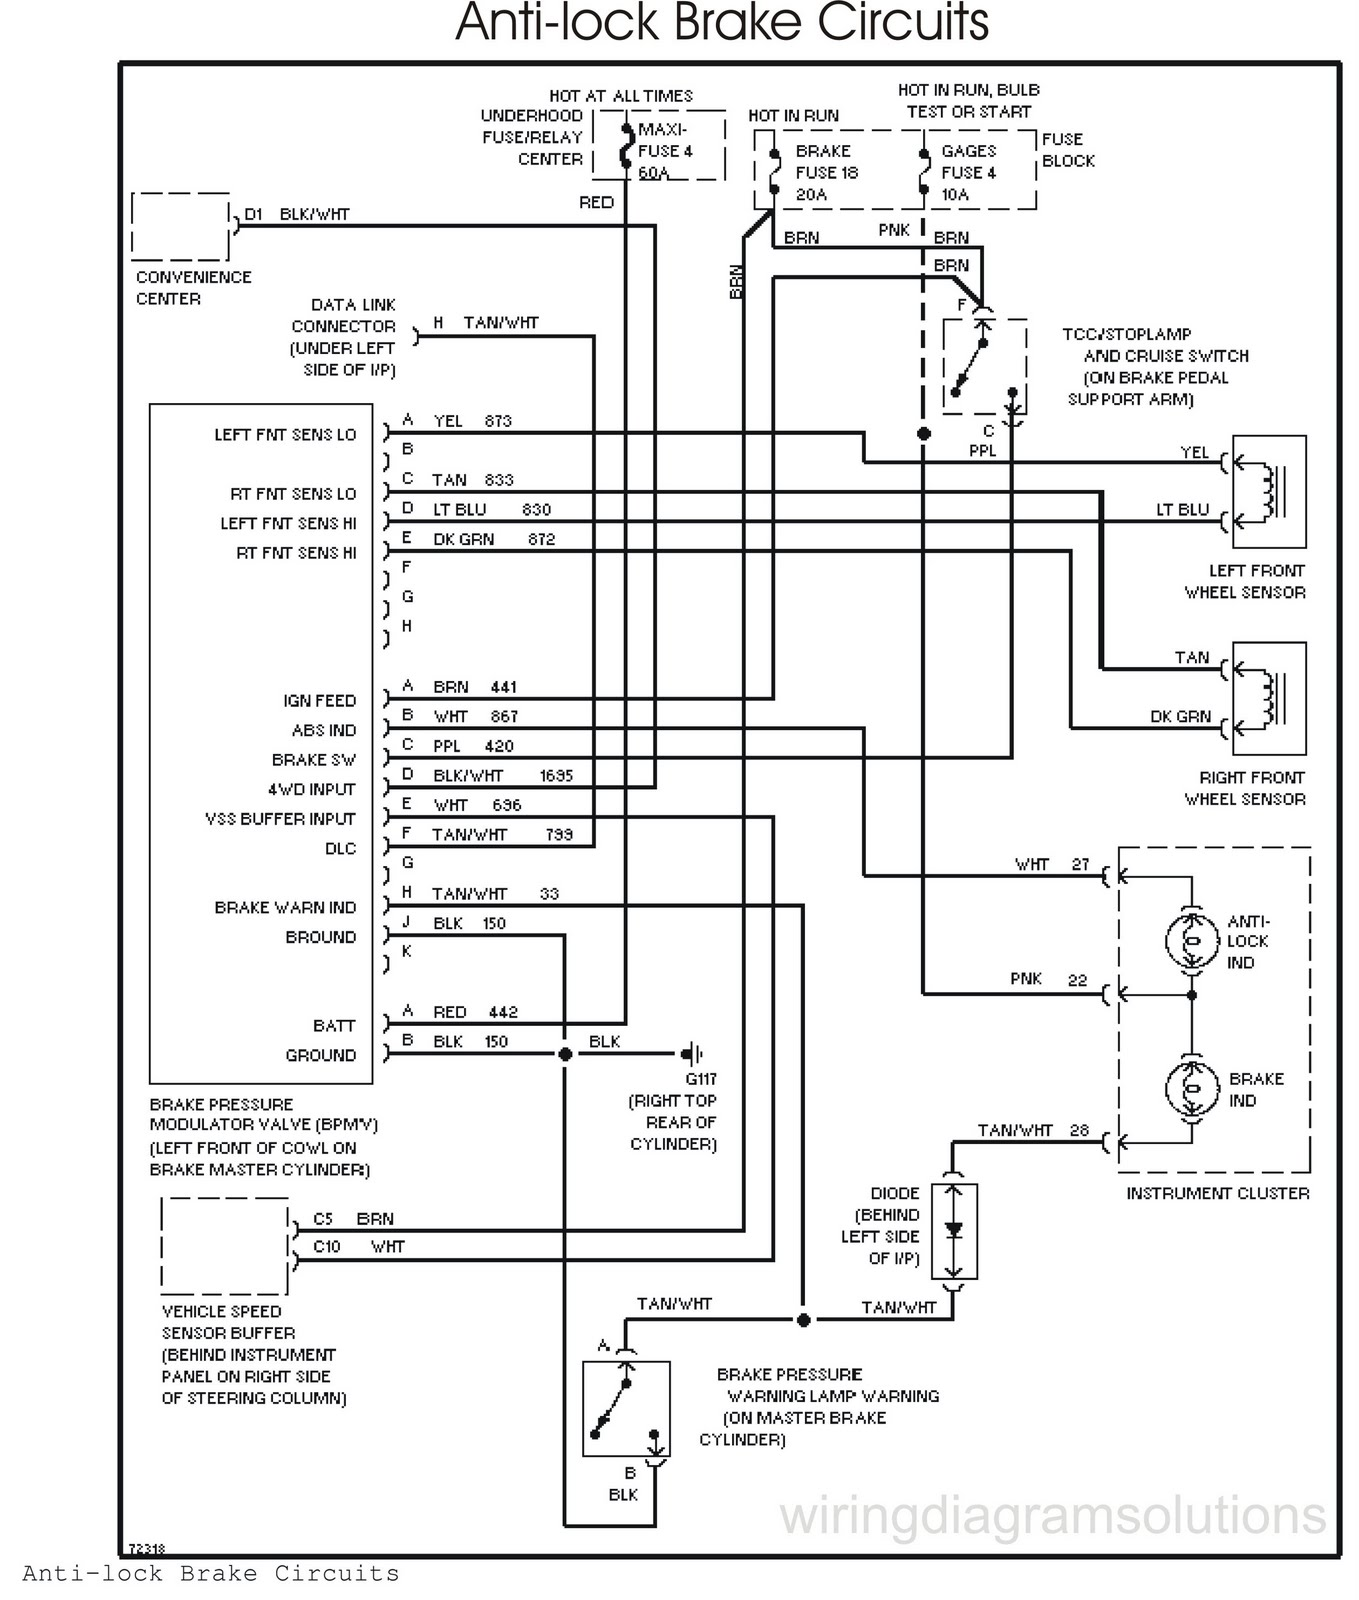 1996 Chevy Fuel Pump Wiring Diagram | Wiring Diagram Database